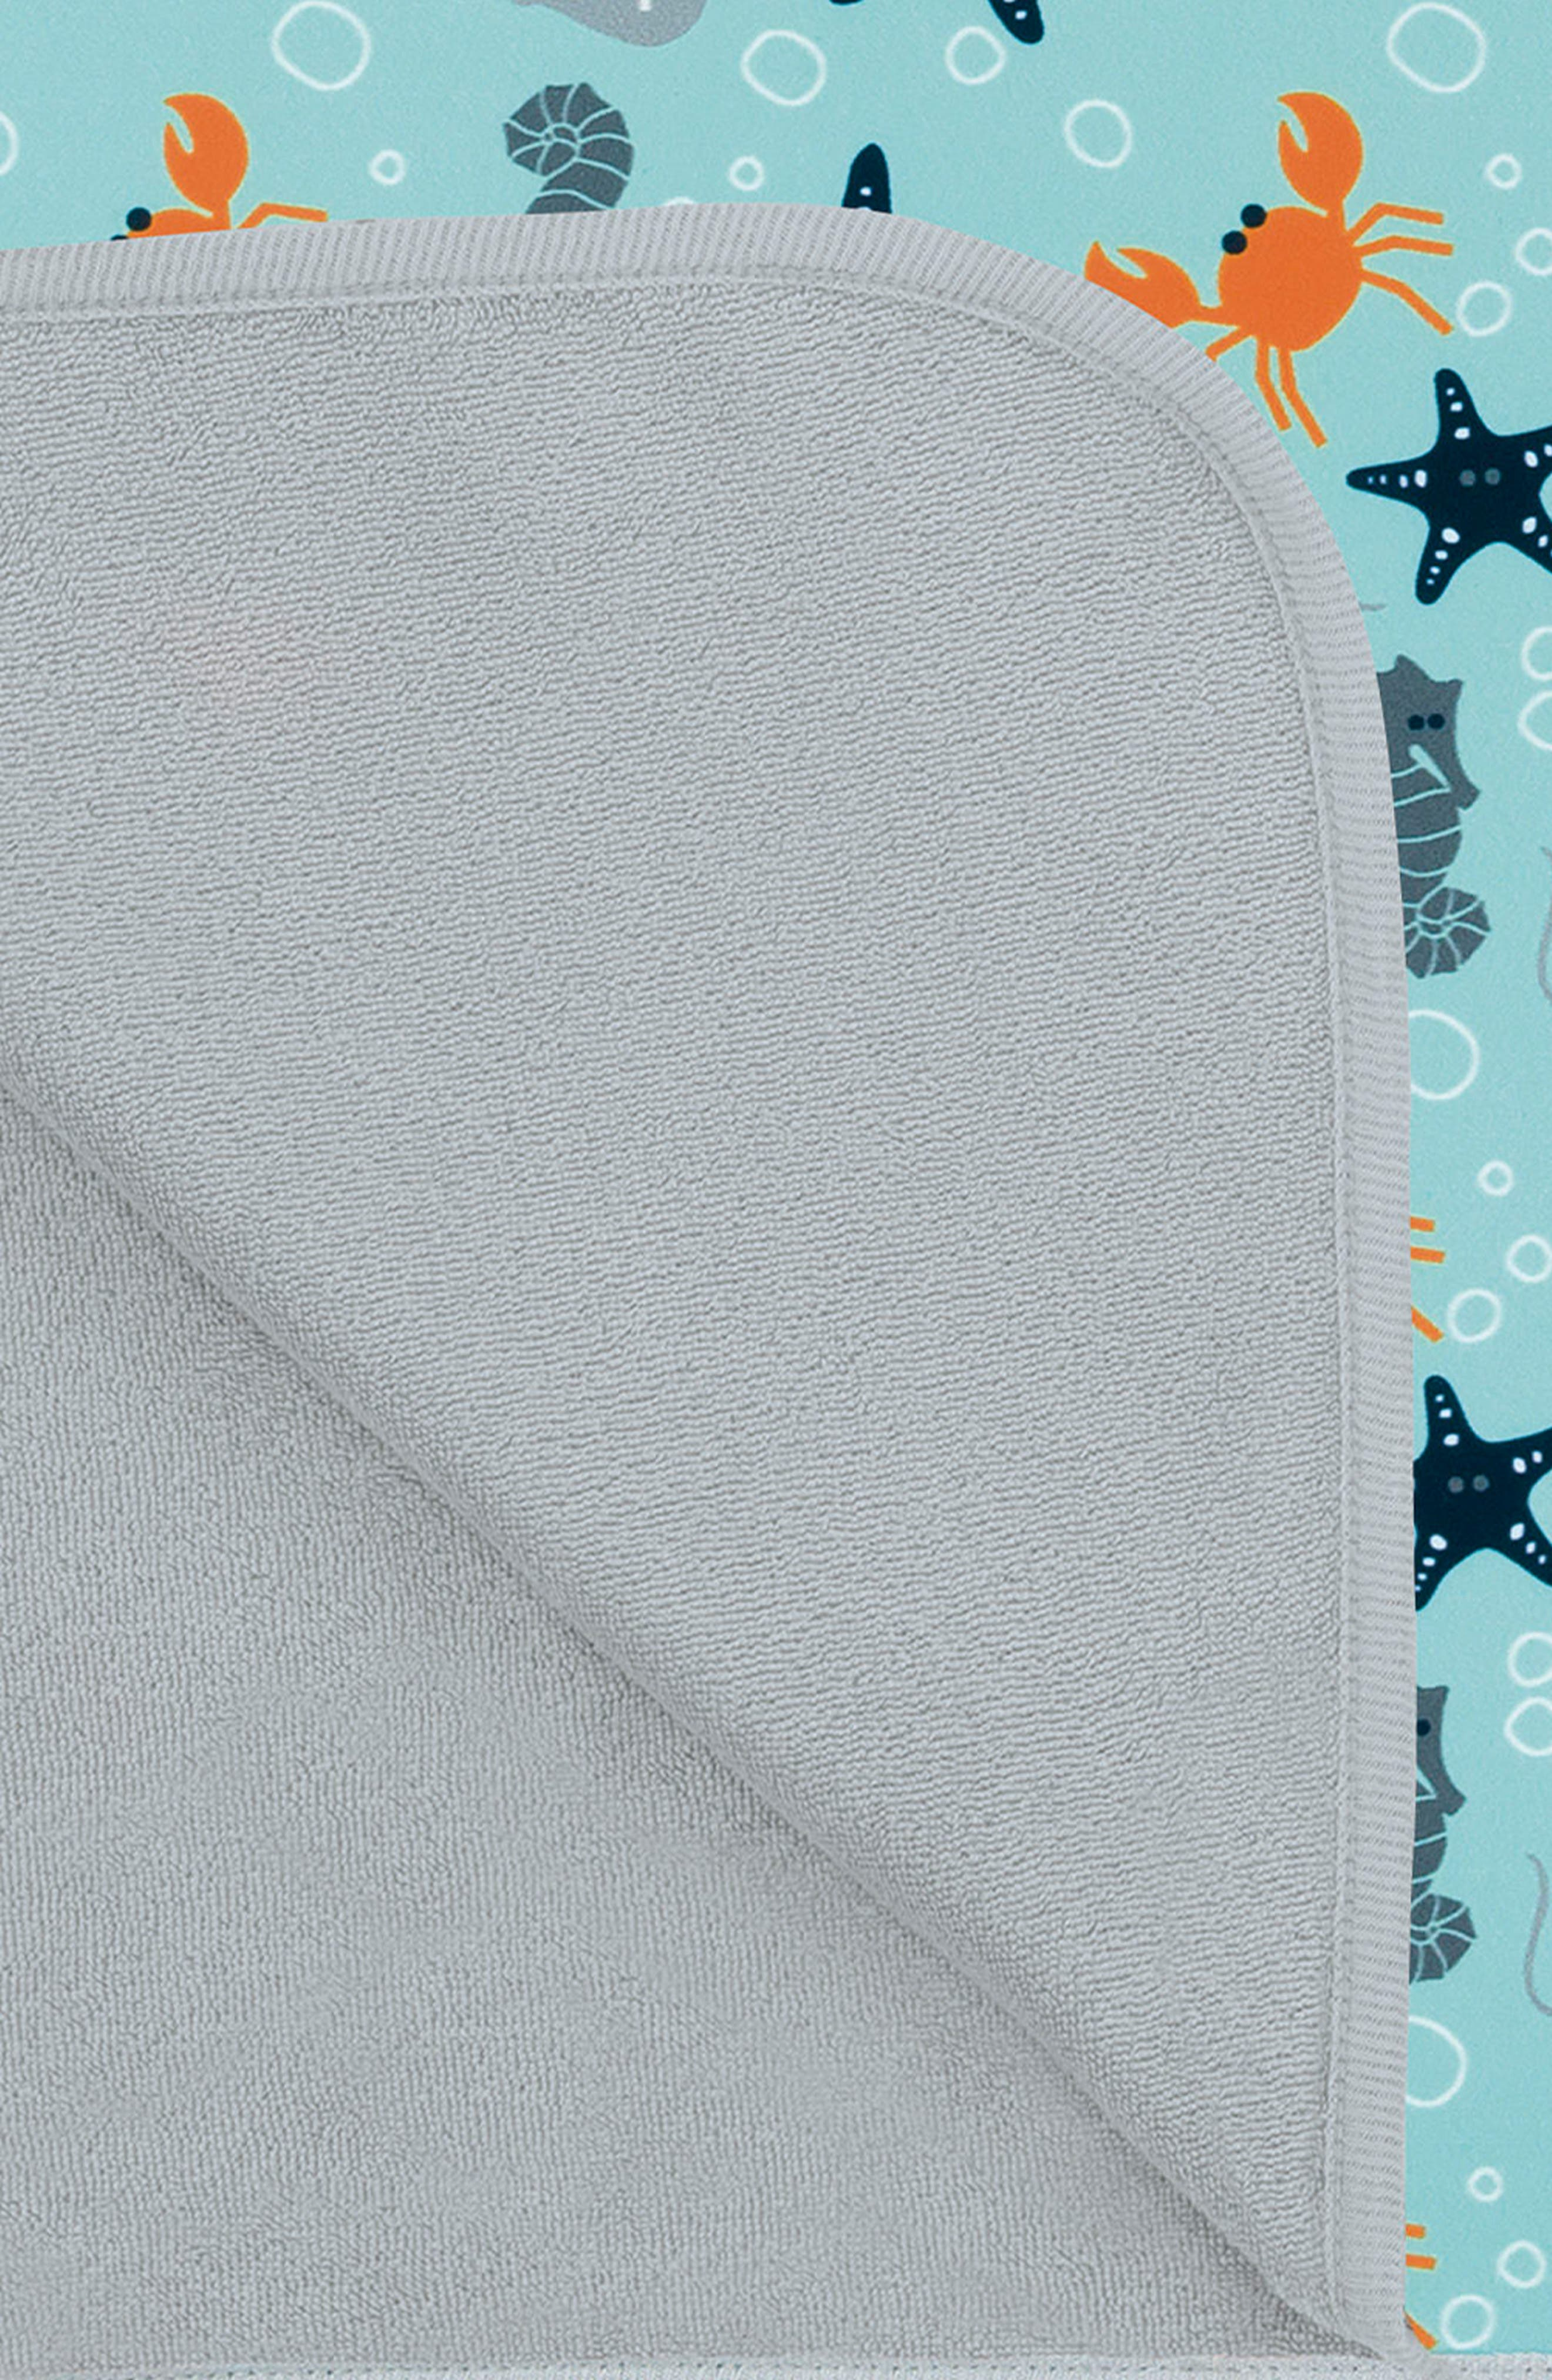 Starfish Hooded Beach Poncho,                             Alternate thumbnail 2, color,                             Light Blue Orange Grey Navy